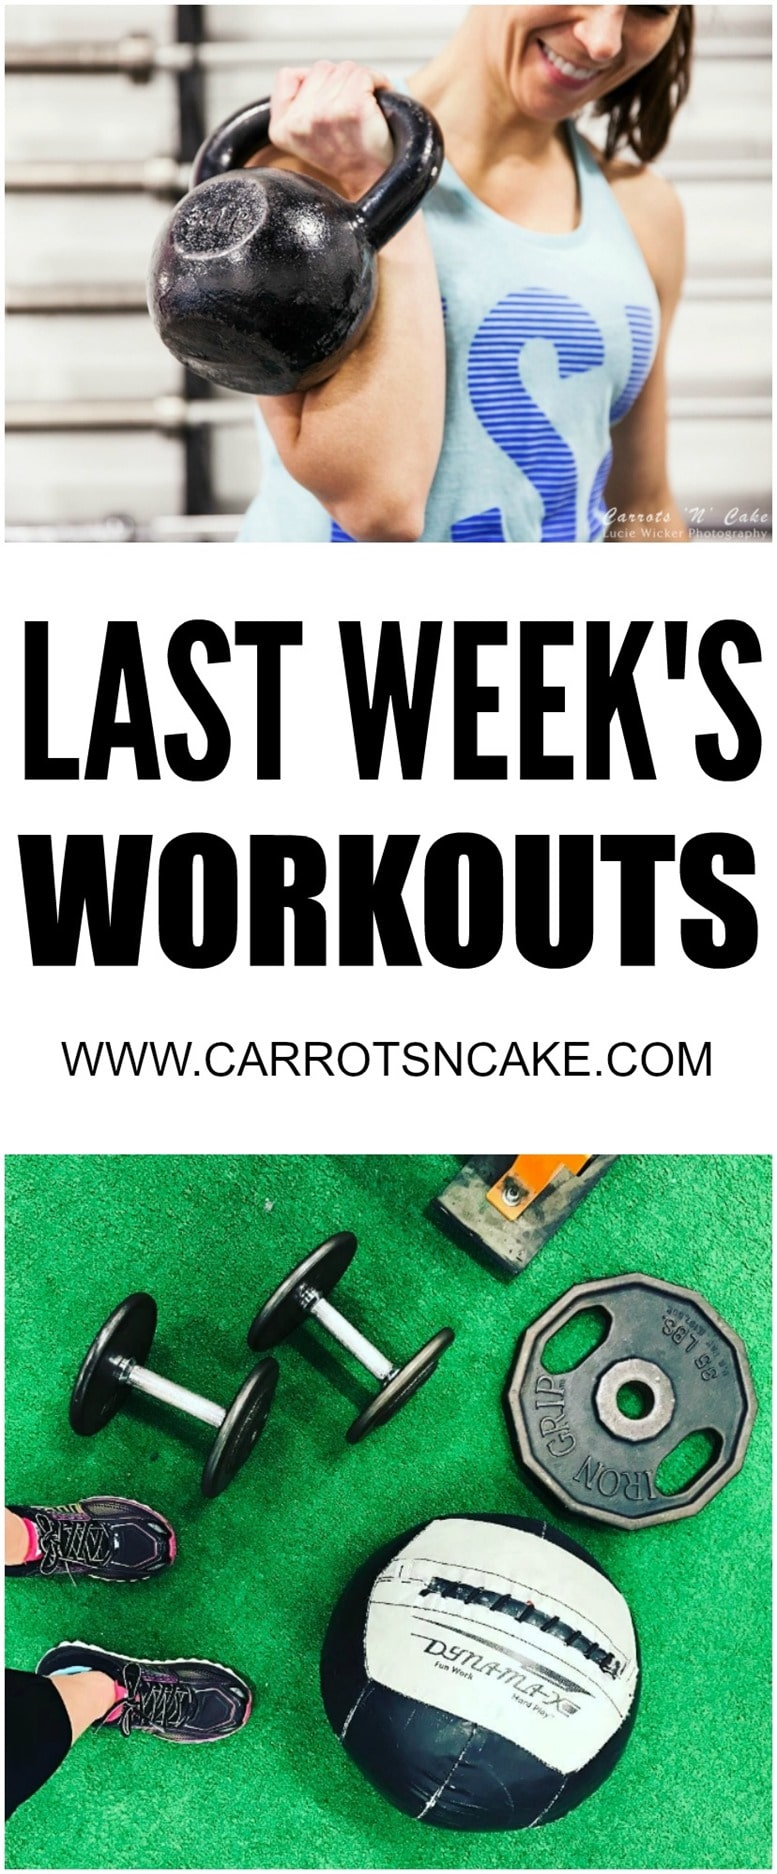 LAST WEEK'S WORKOUTS CNC